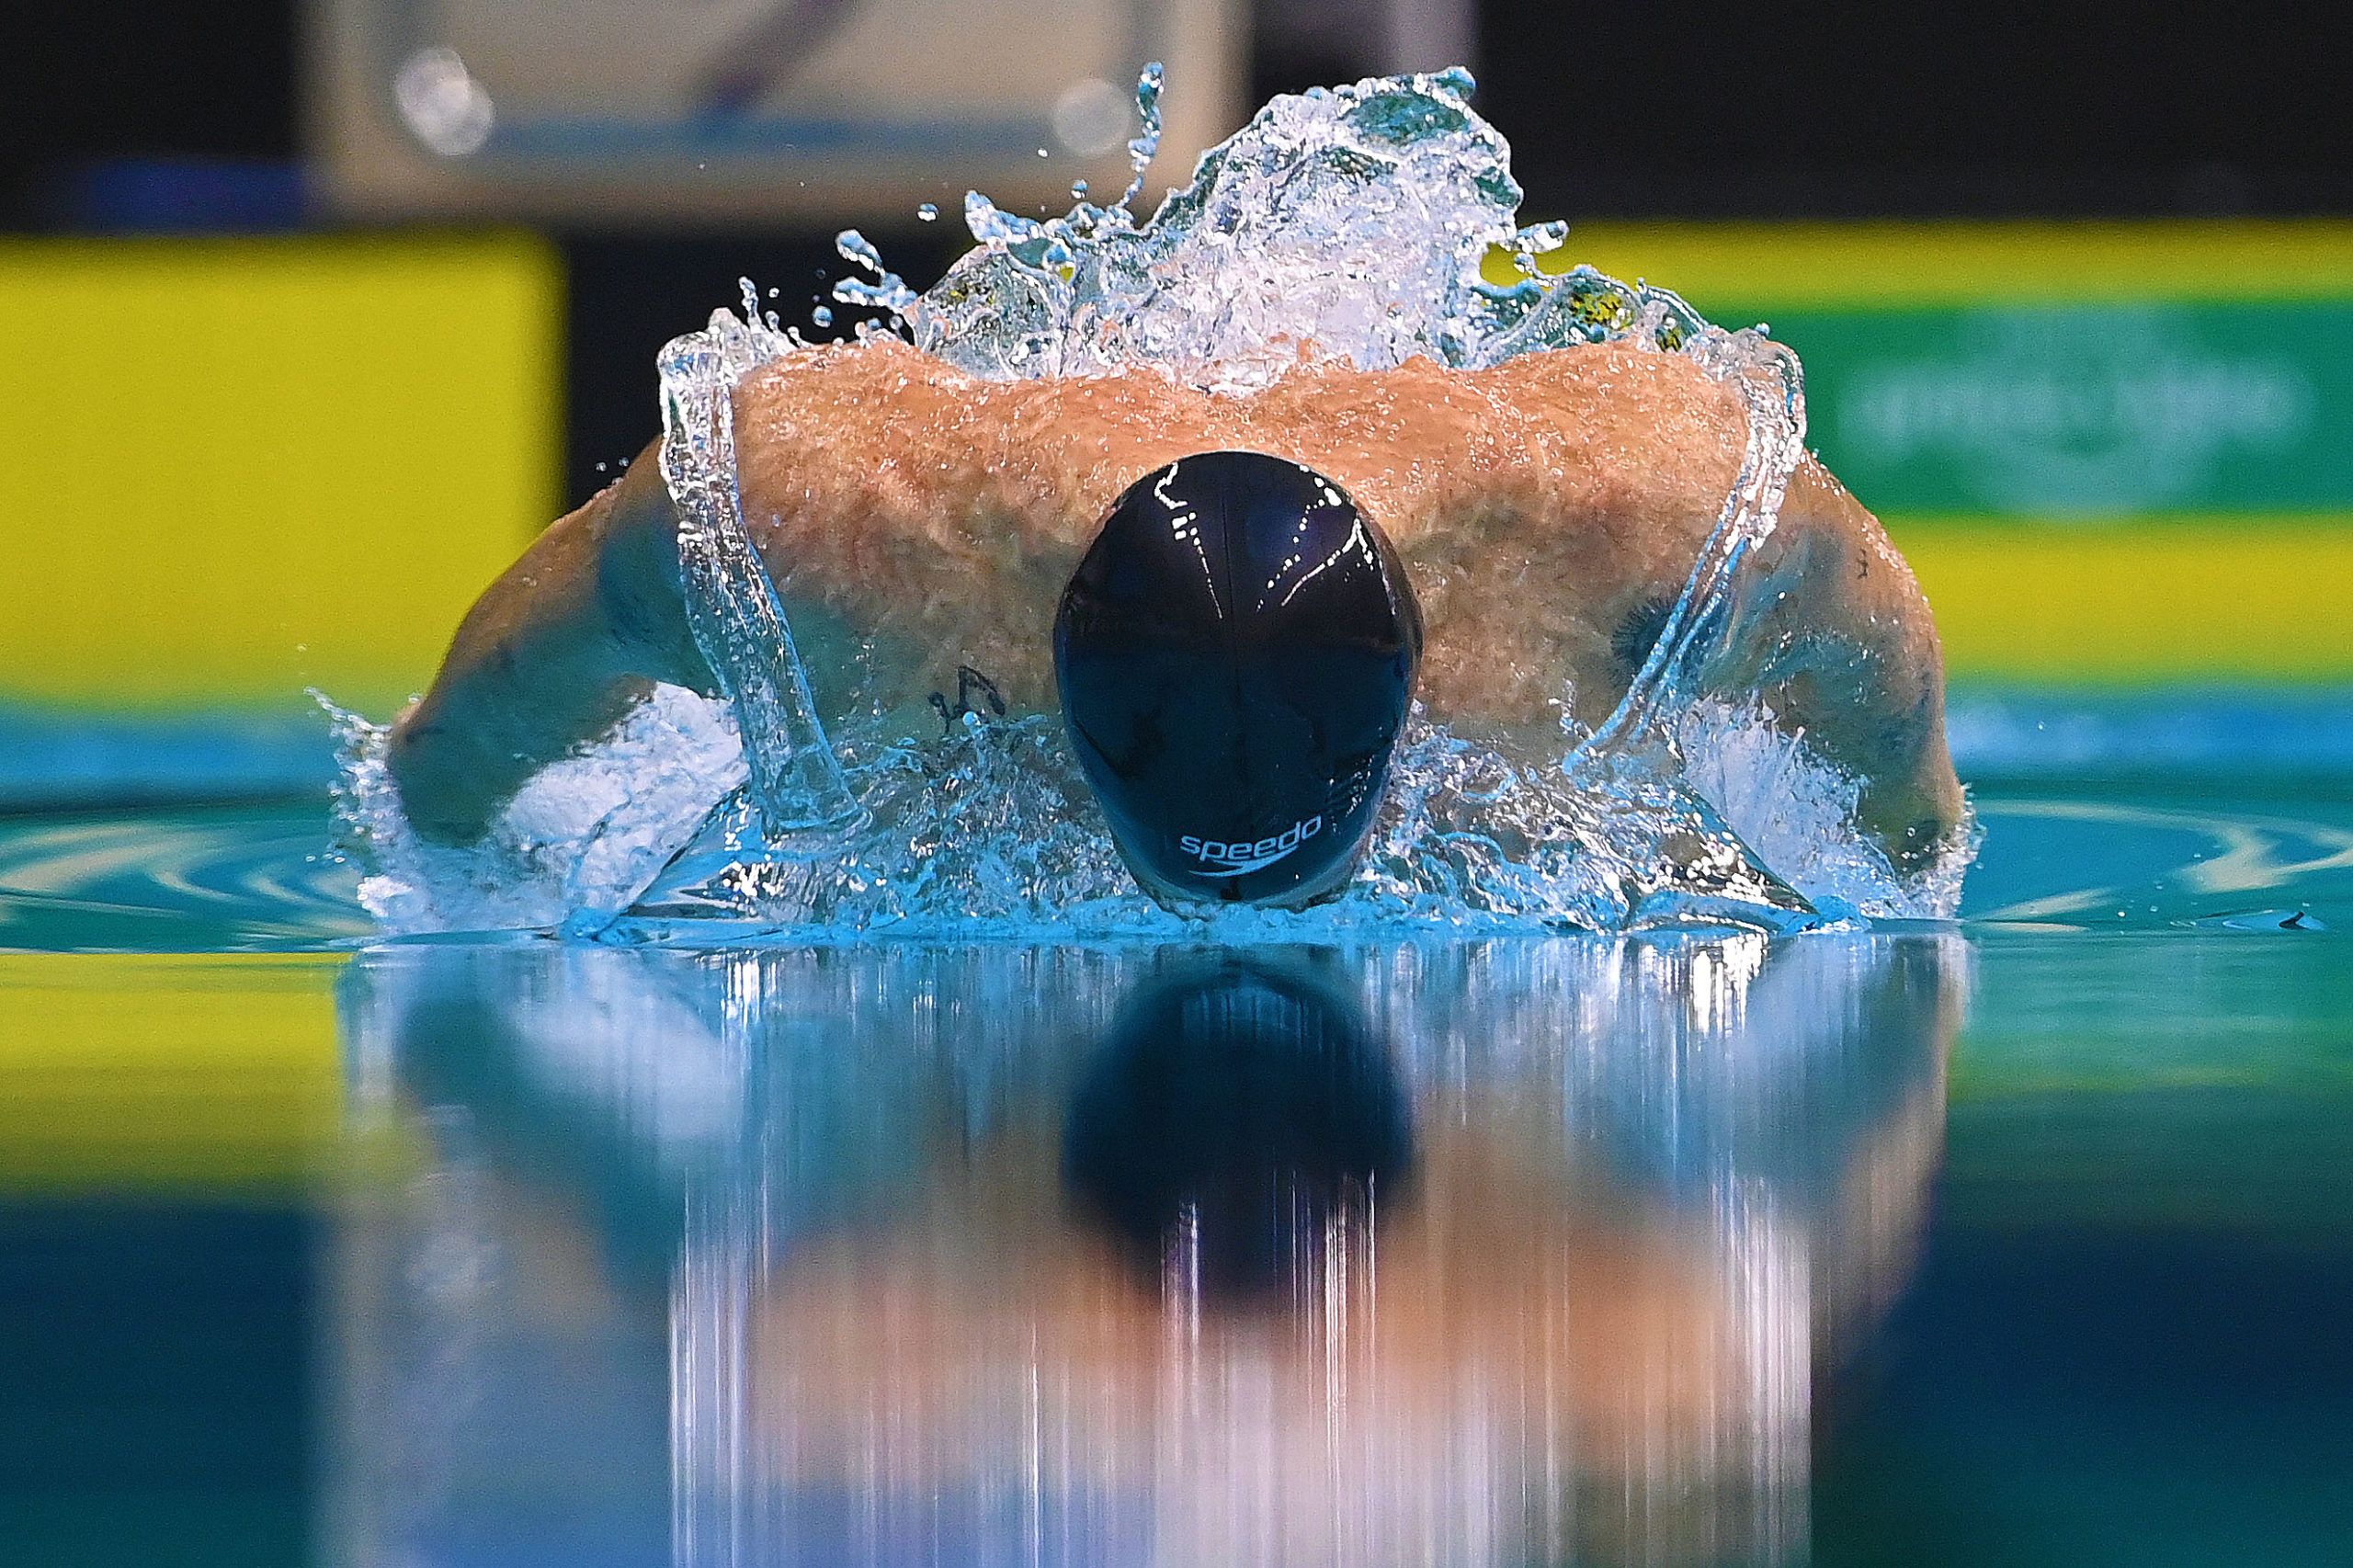 """Cody Simpson """"Like A Kid In A Candy Shop"""" Says Coach Michael Bohl - And He Flies Into Trials Final With A Bullet - Swimming World News"""